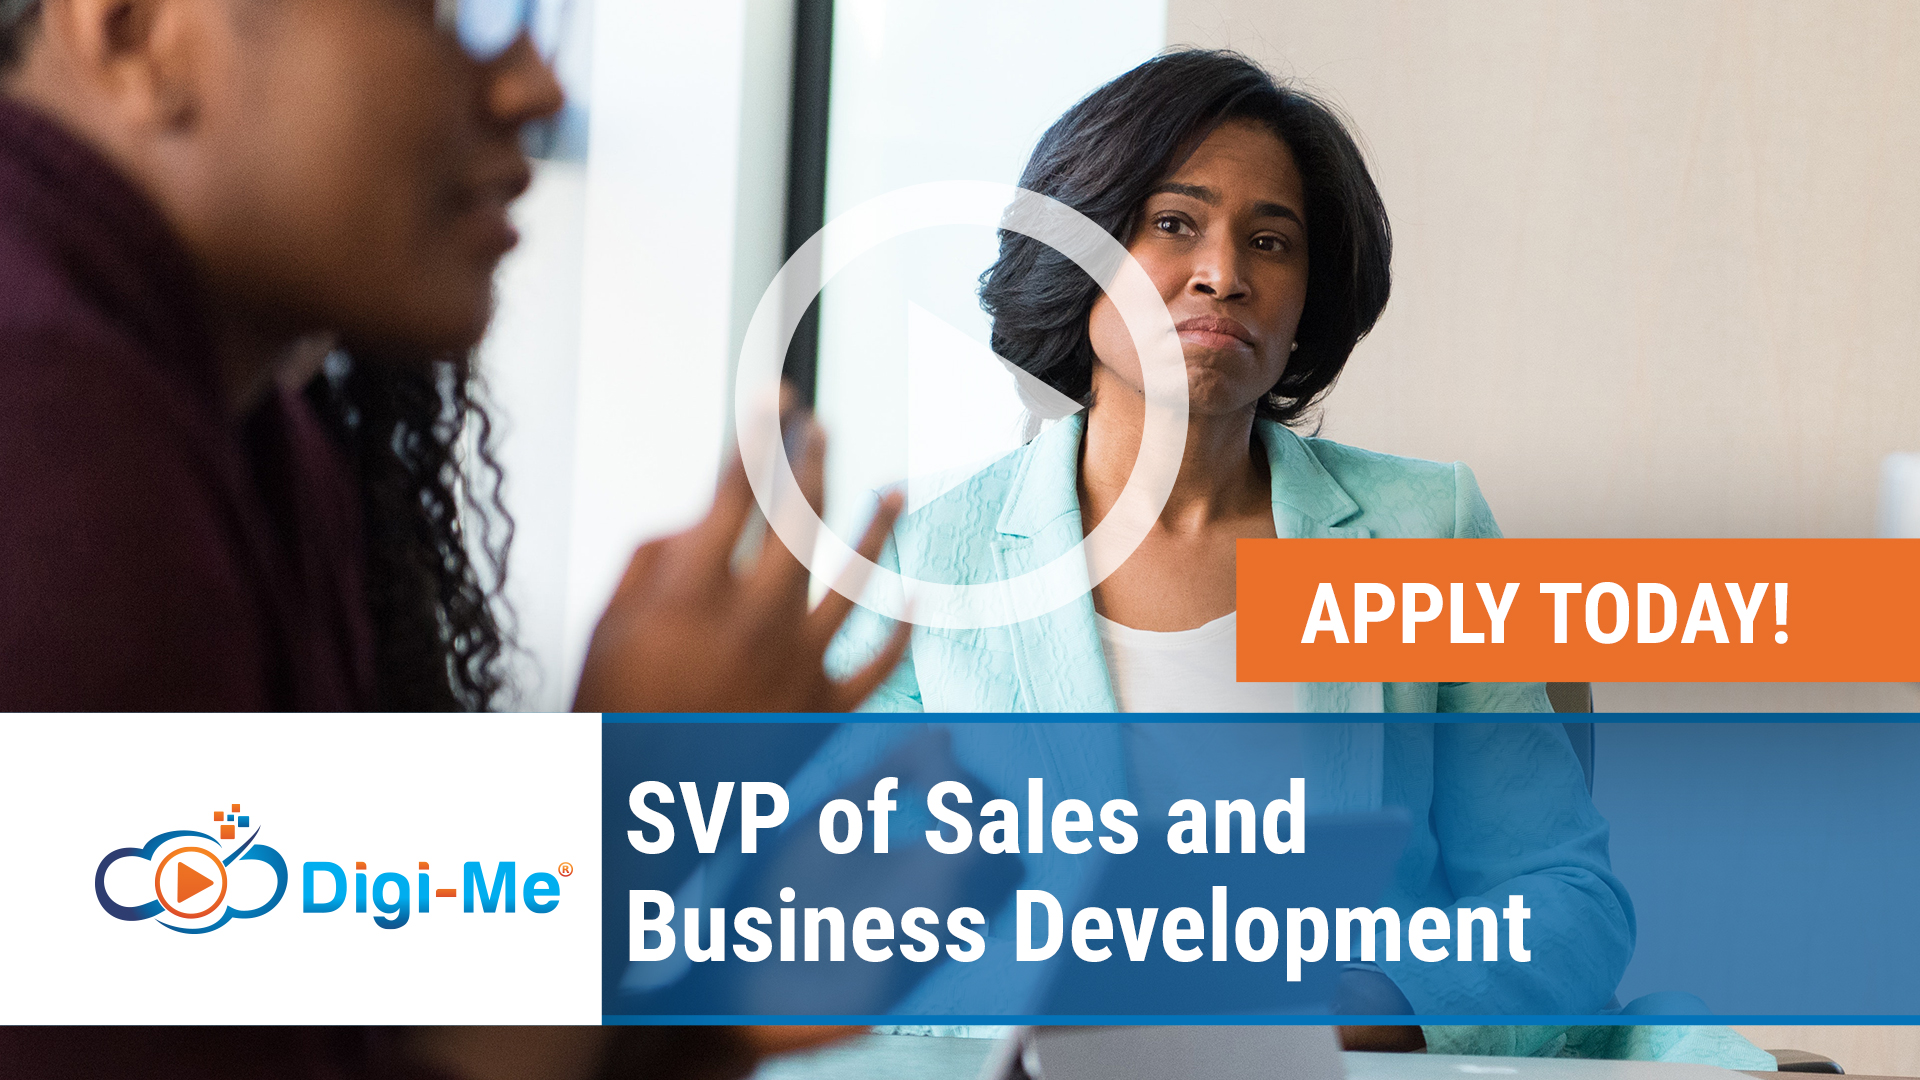 Watch our careers video for available job opening SVP of Sales and Business Development in Naperville,Illinois or Virtua